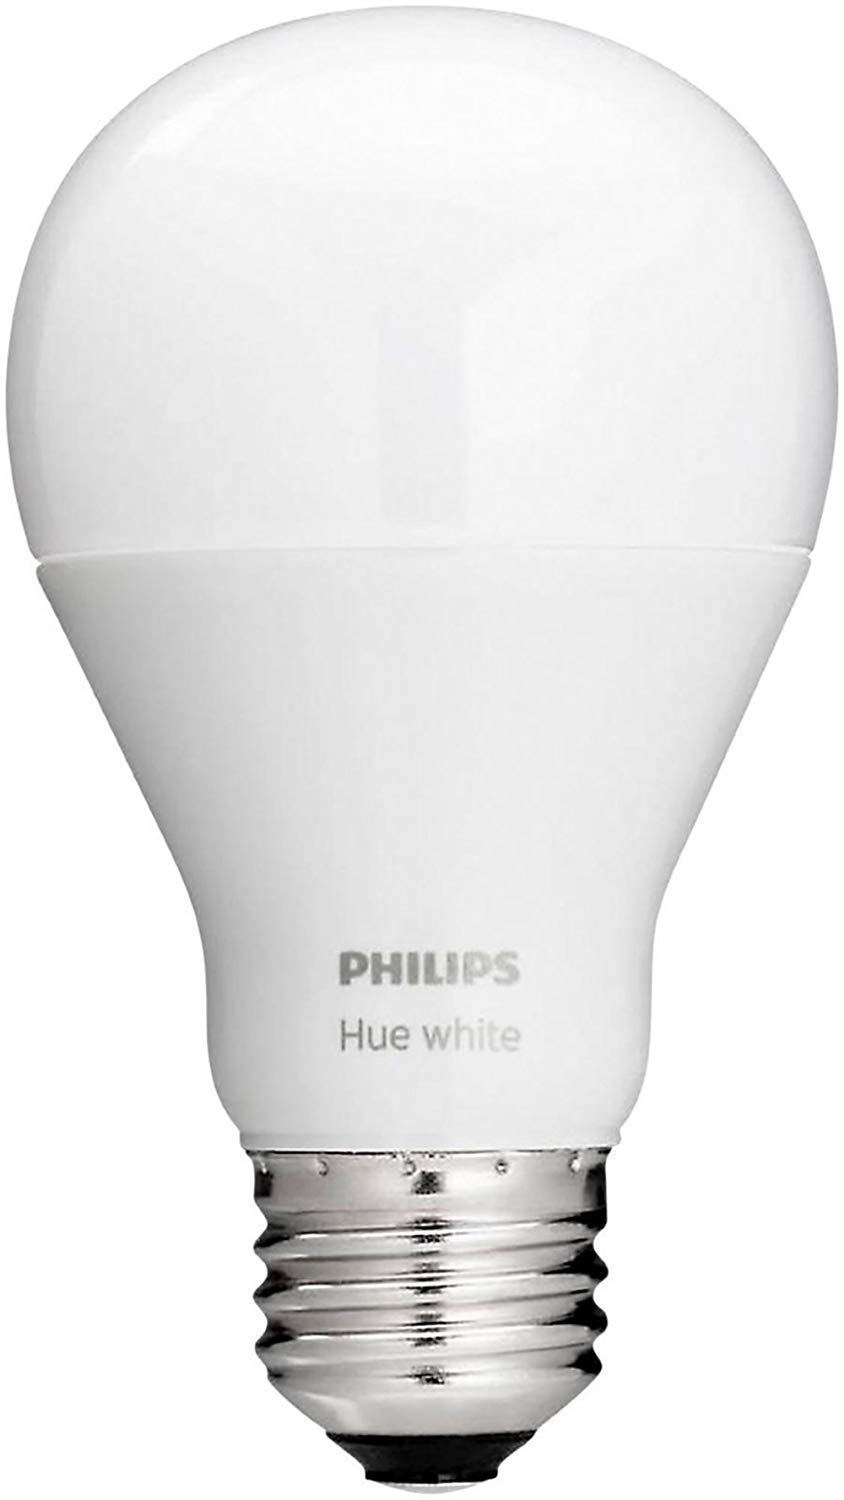 Philips Hue Led Light How To Replace The Bulb In The Philips Hue Inara Outdoor Wall